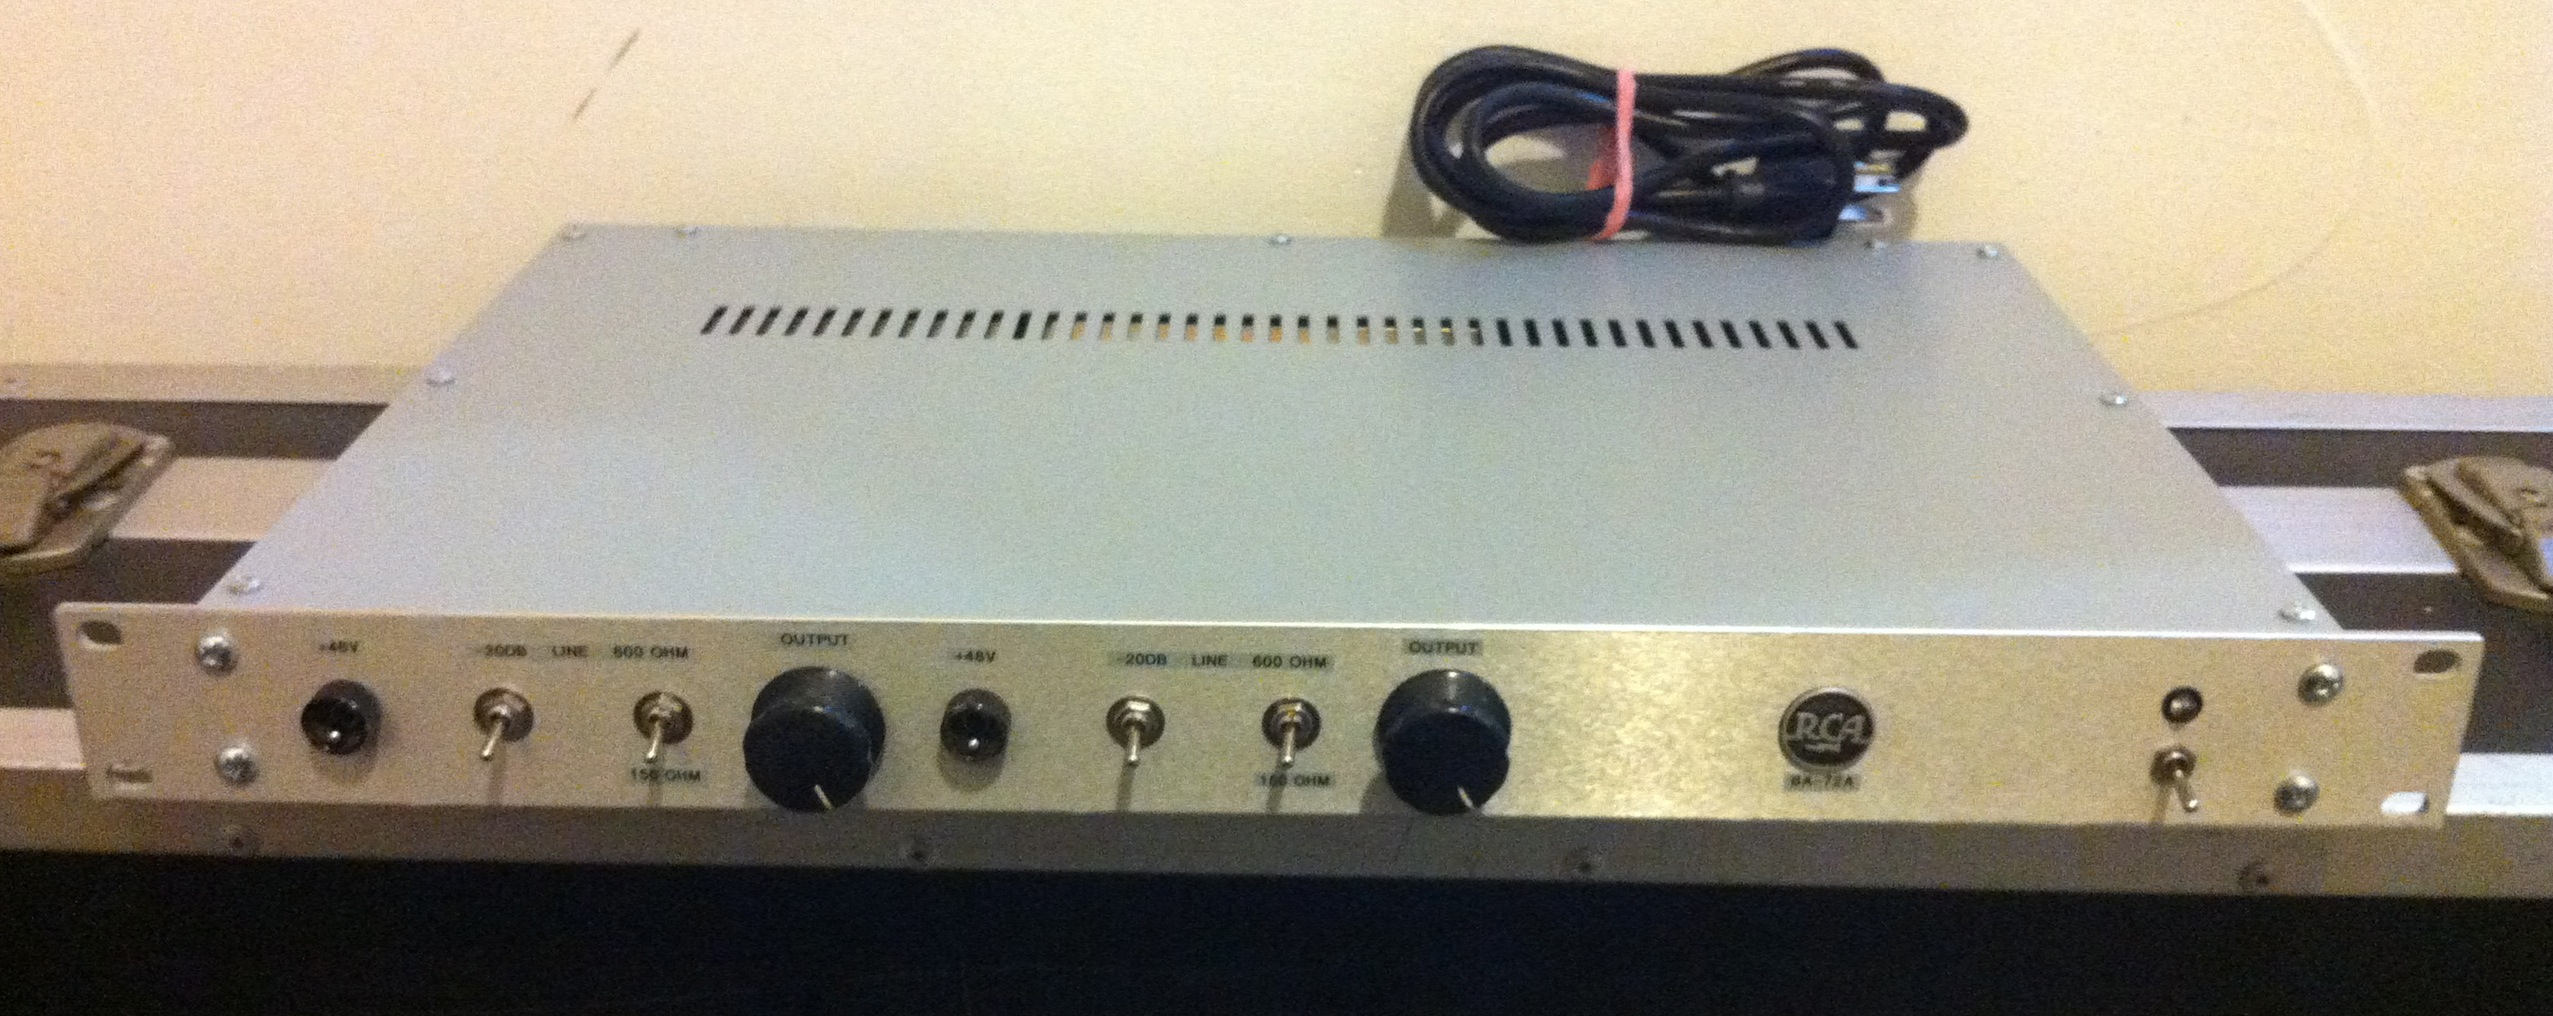 Discrete Transistor Analog Audio Repair Line Highend Preamplifier With Ics Rca Ba 71 Vintage Front